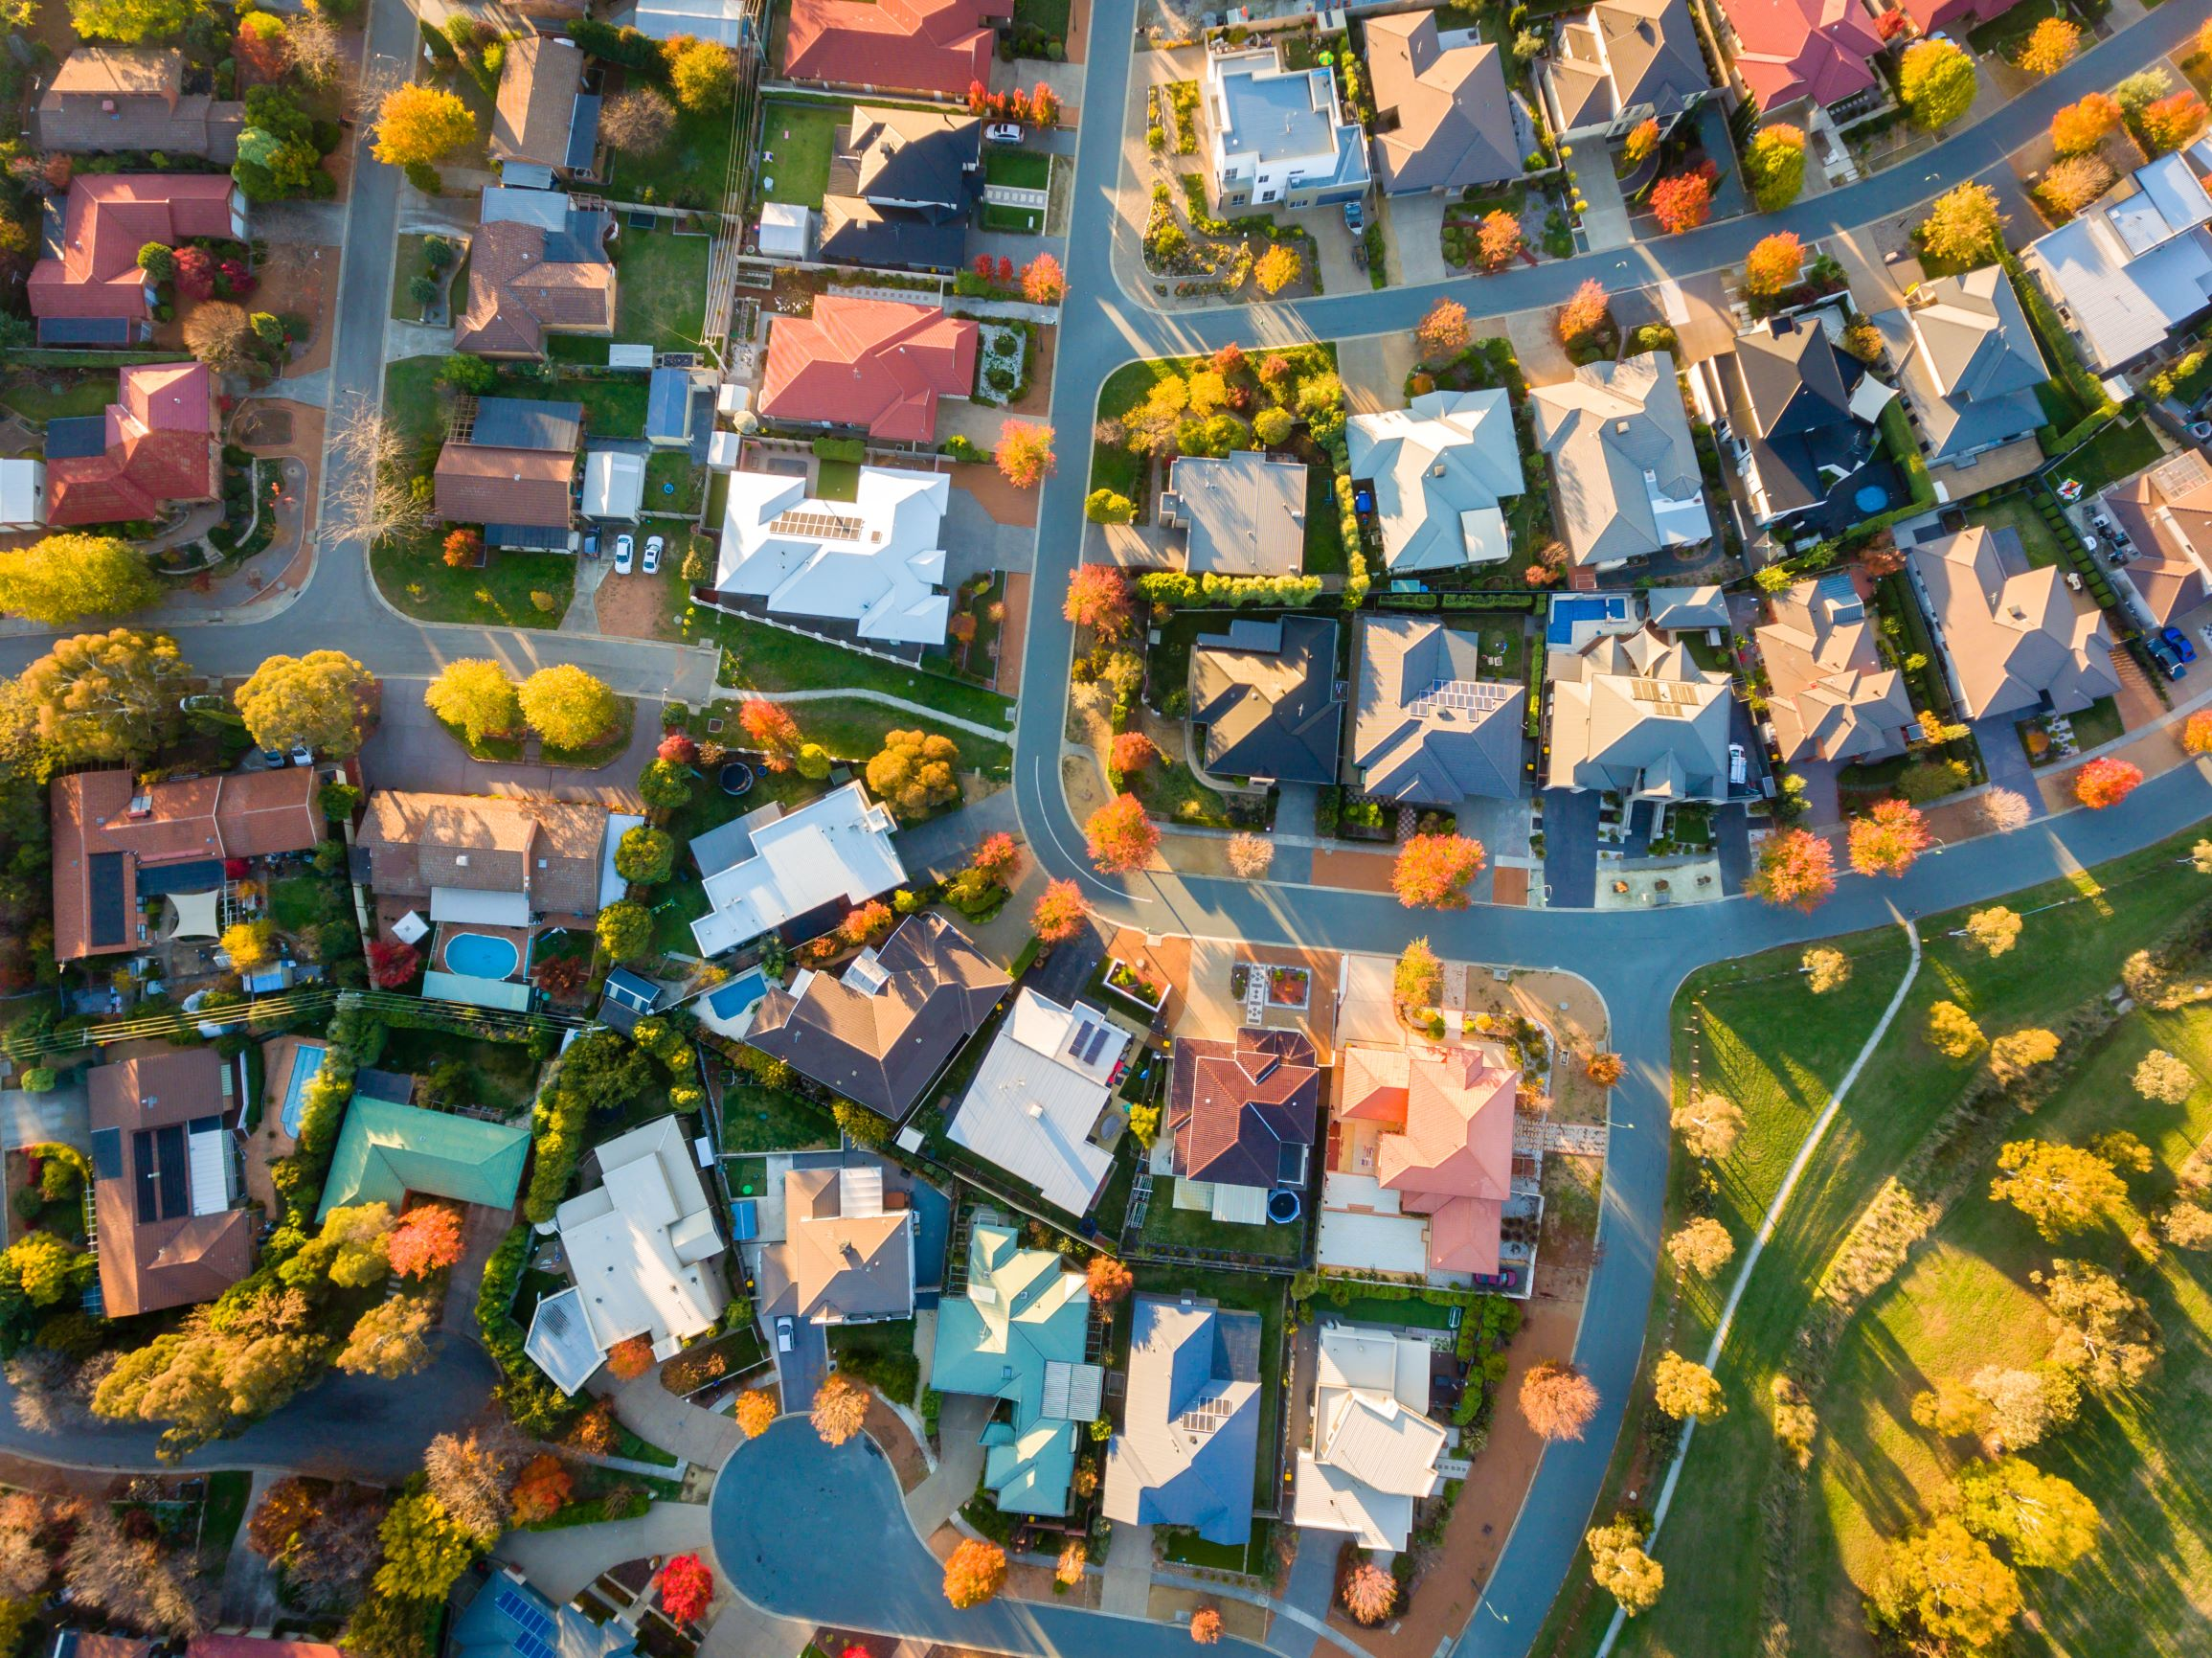 A drone shot of a suburb of houses.